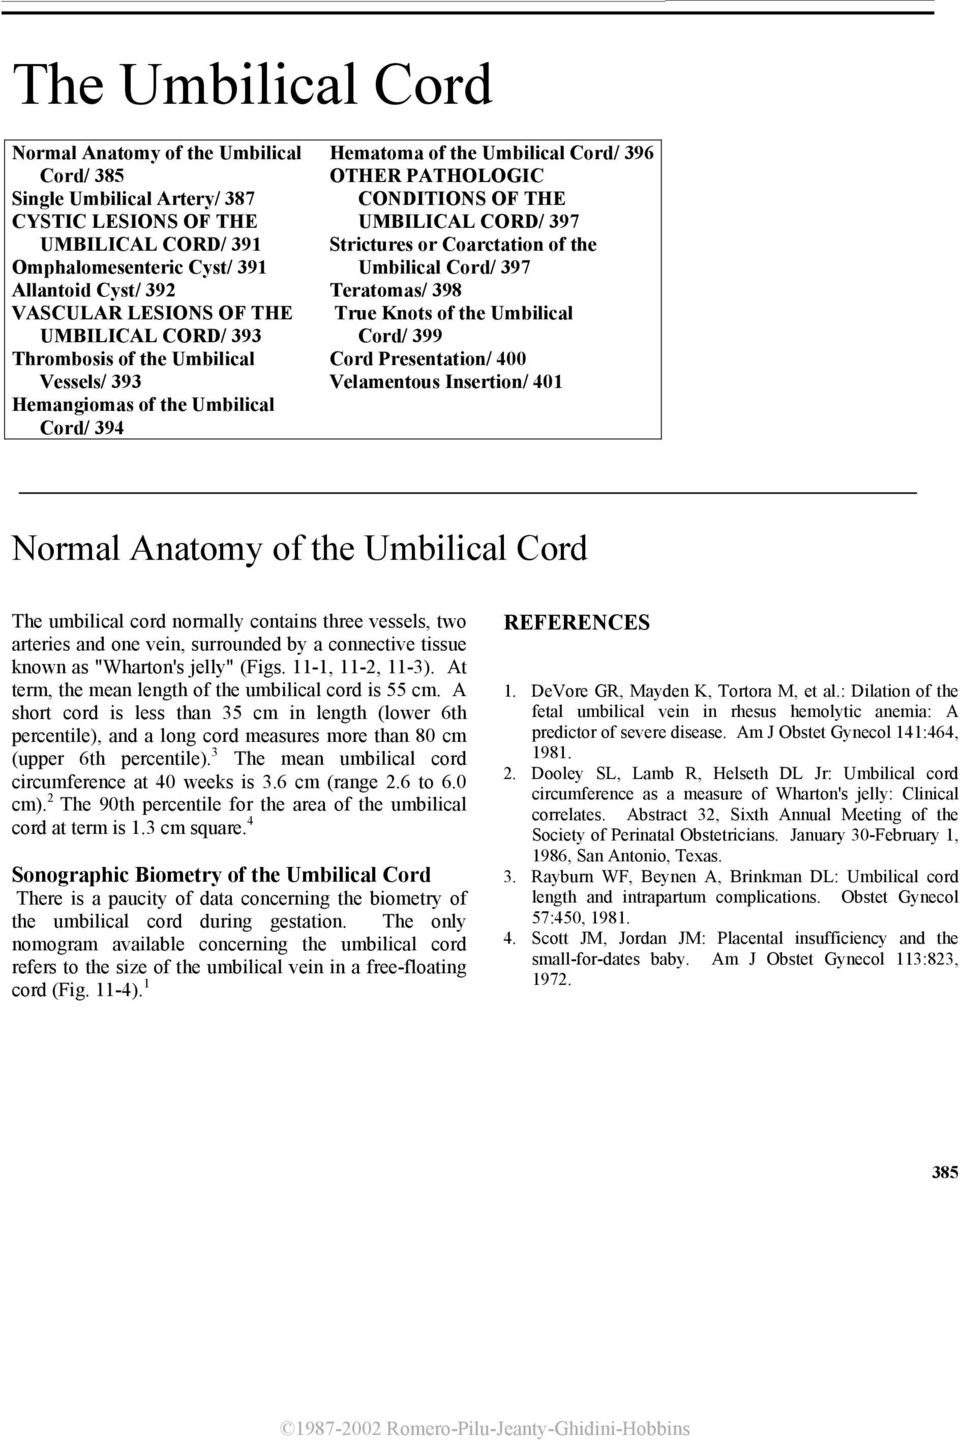 The Umbilical Cord Normal Anatomy Of The Umbilical Cord References